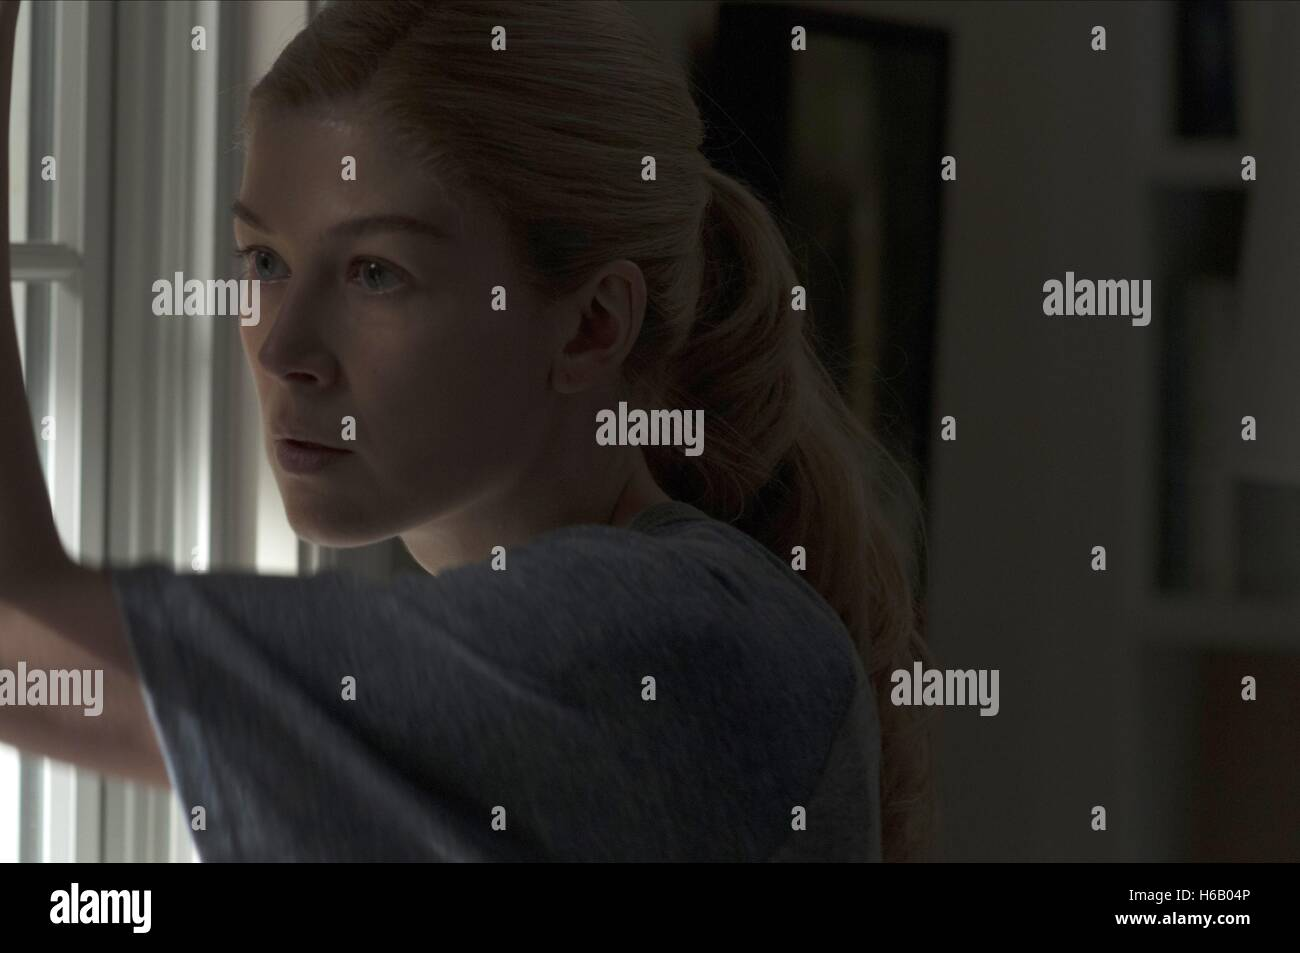 ROSAMUND PIKE GONE GIRL (2014) - Stock Image